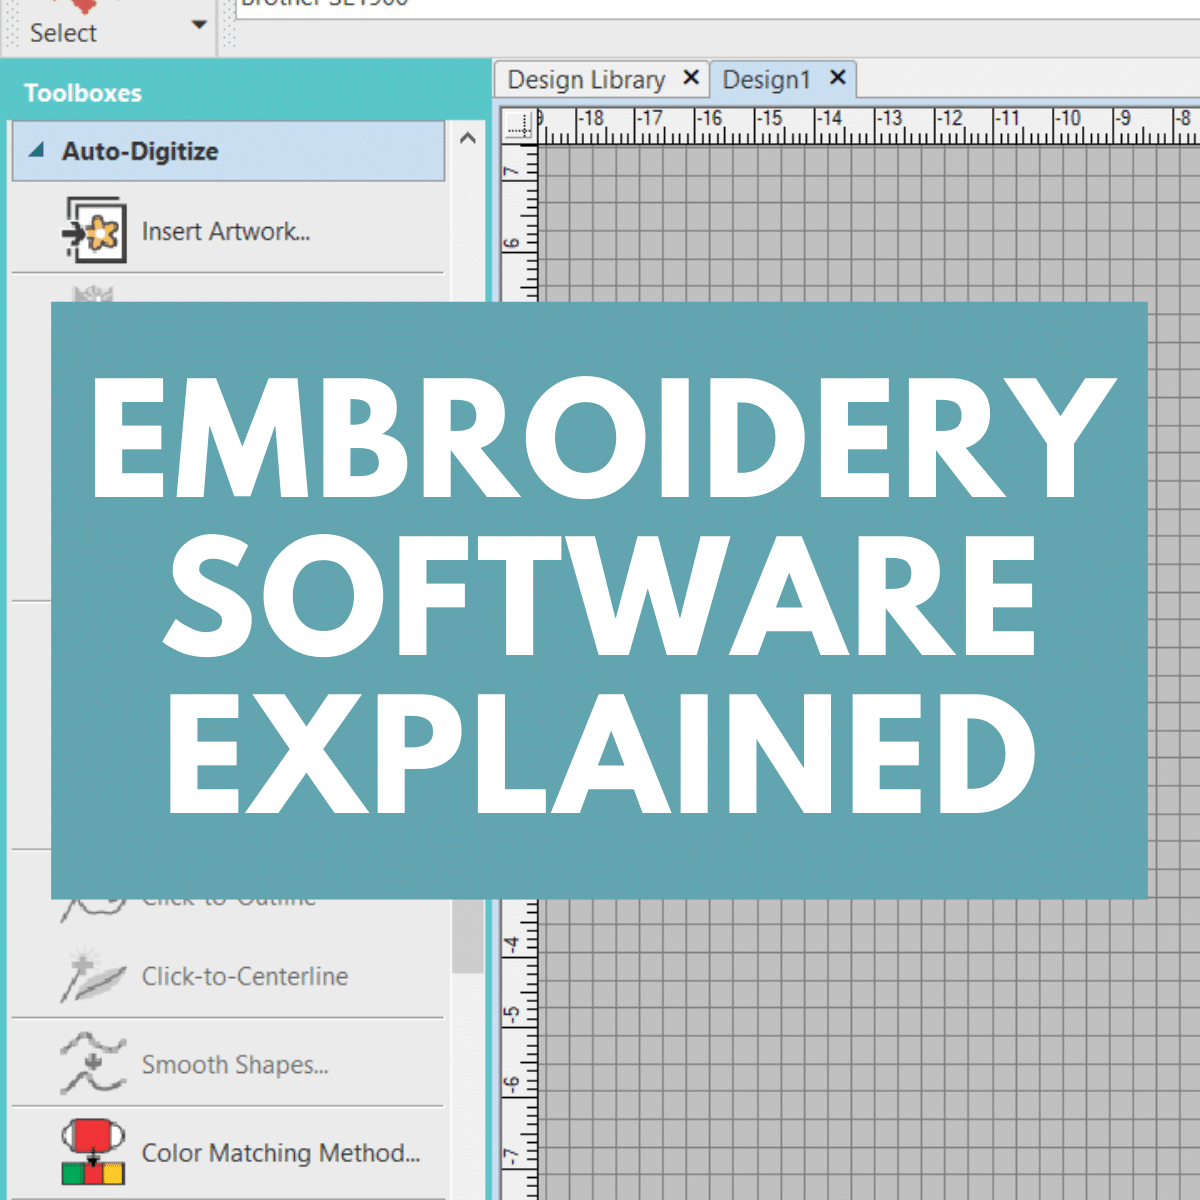 5 Best Embroidery Software for Digitizing & Editing – Comparisons